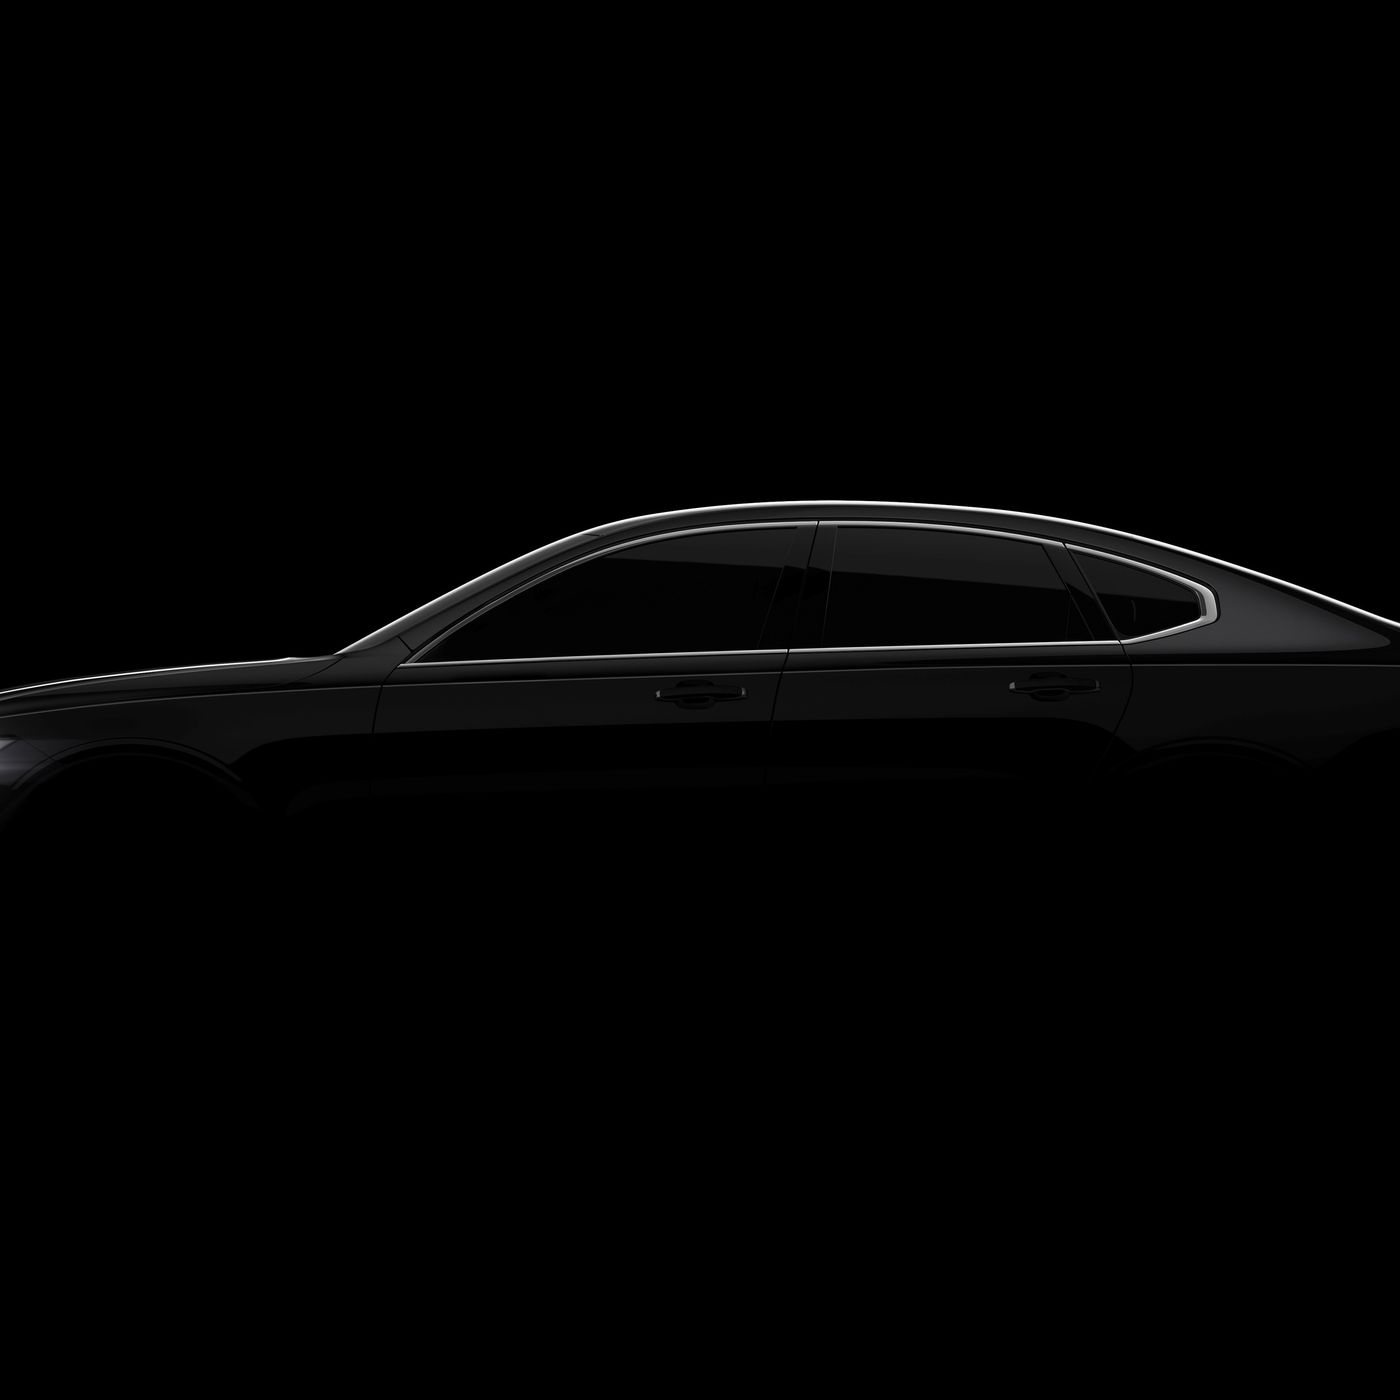 Volvo Teases Its Upcoming S90 Full Size Sedan Full Reveal Coming In January The Verge